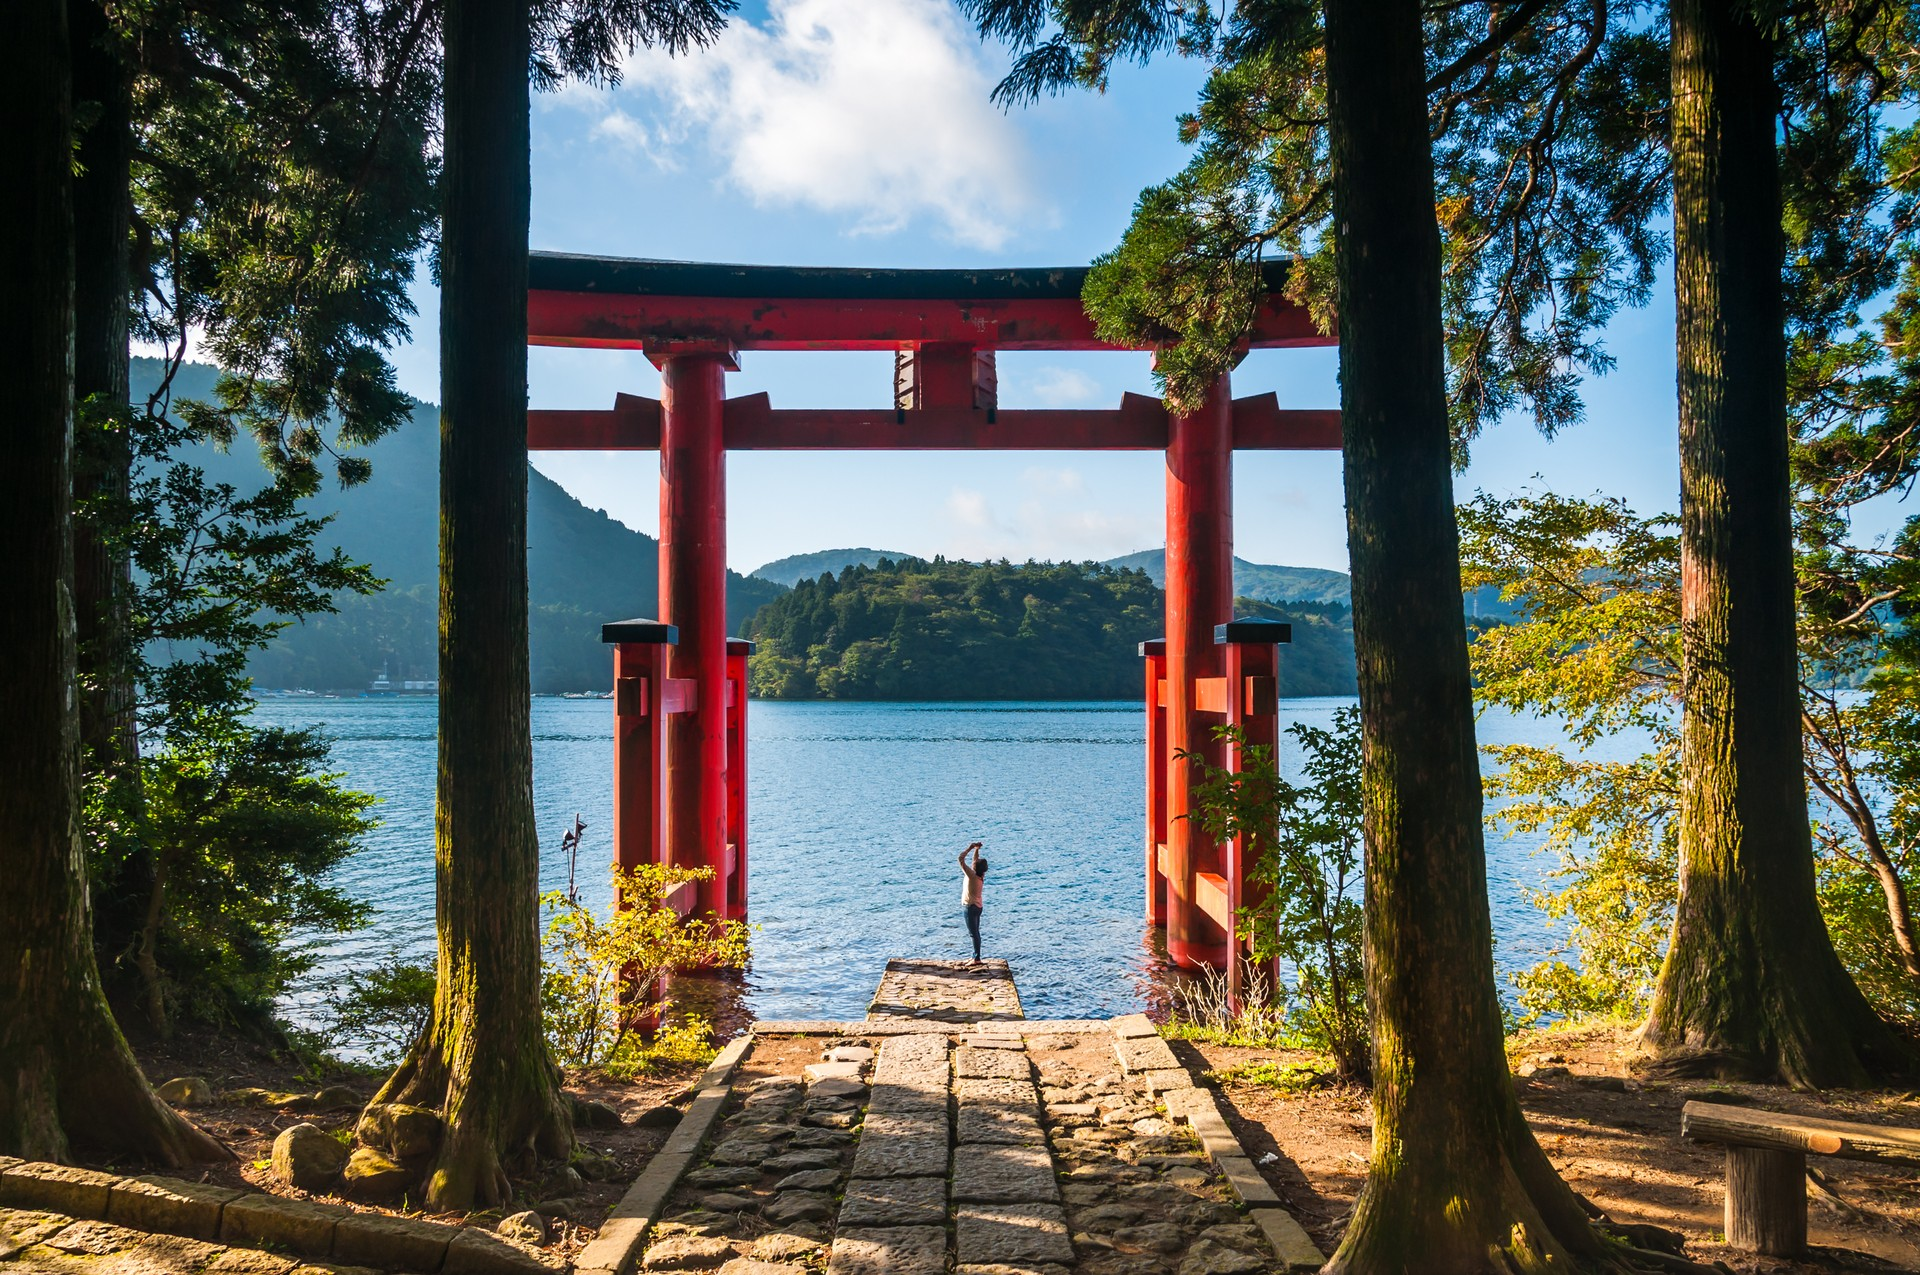 Torii Gate in Hakone National Park